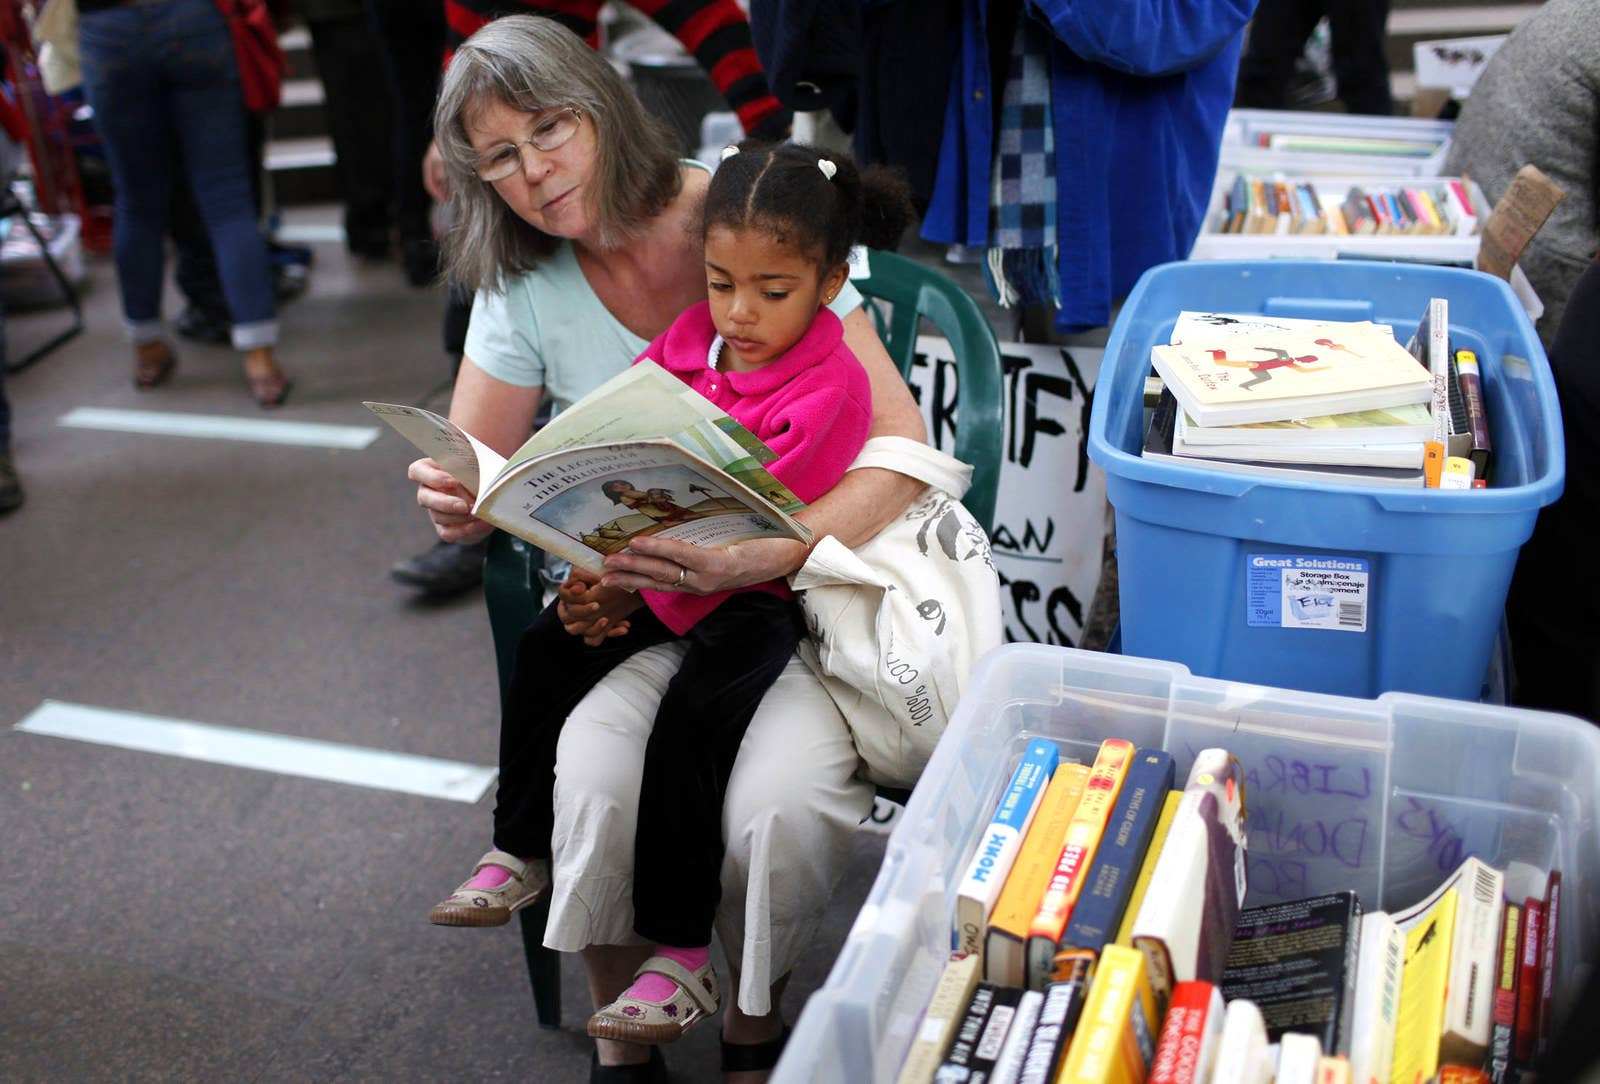 A woman reads to a child at a makeshift library in Zuccotti Park on Oct. 18, 2011.